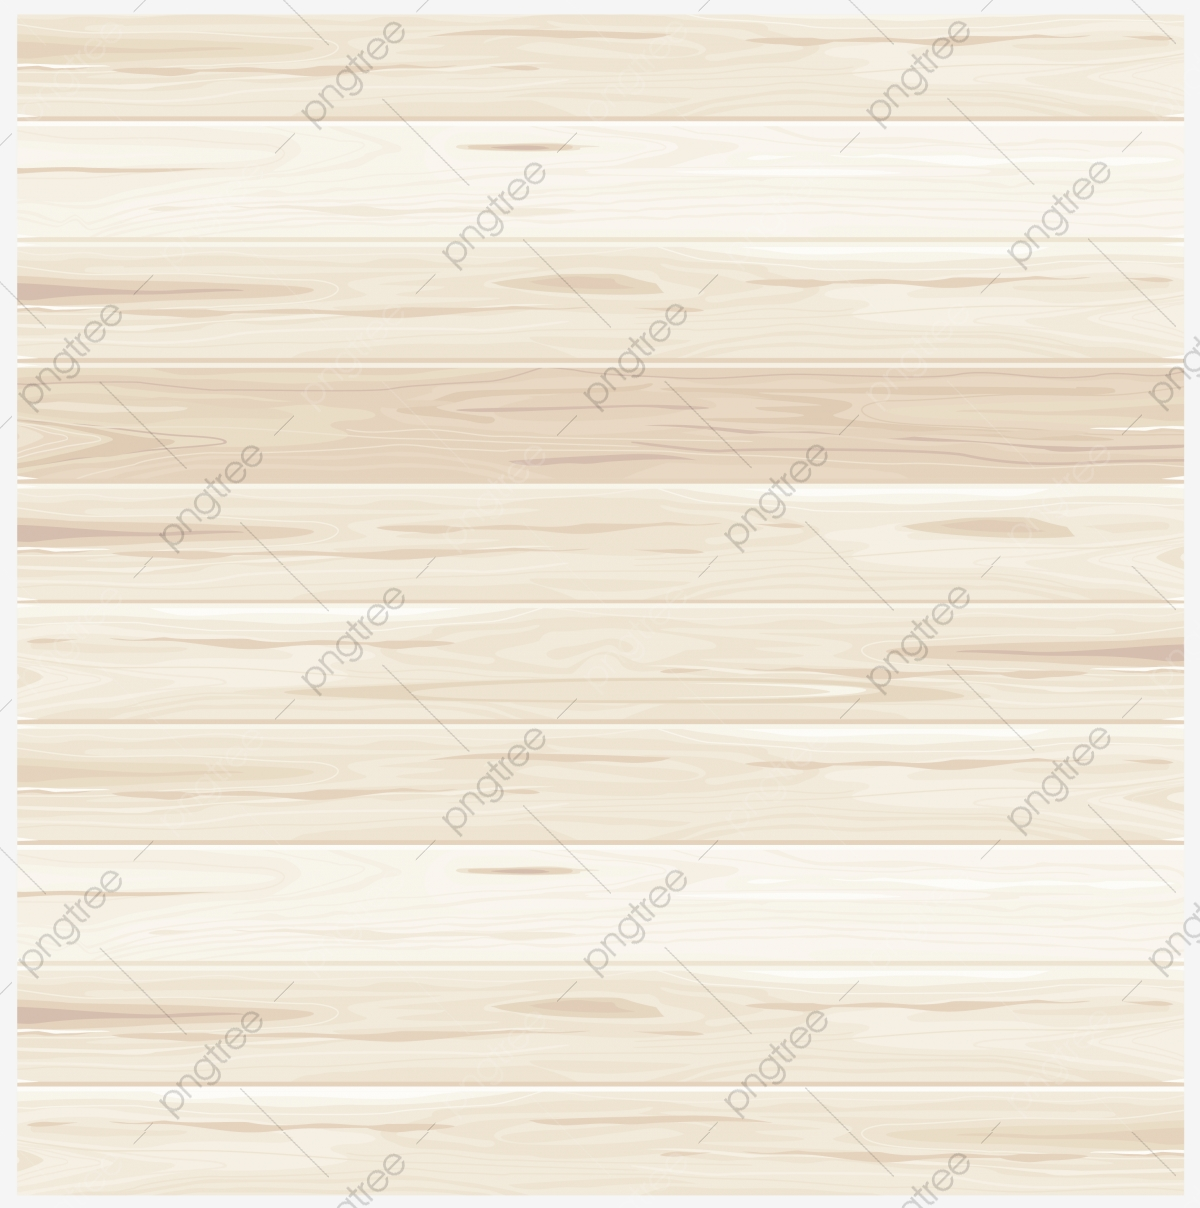 Wood Wood Grain, Wood Clipart, Grain, Wood PNG Transparent Clipart.